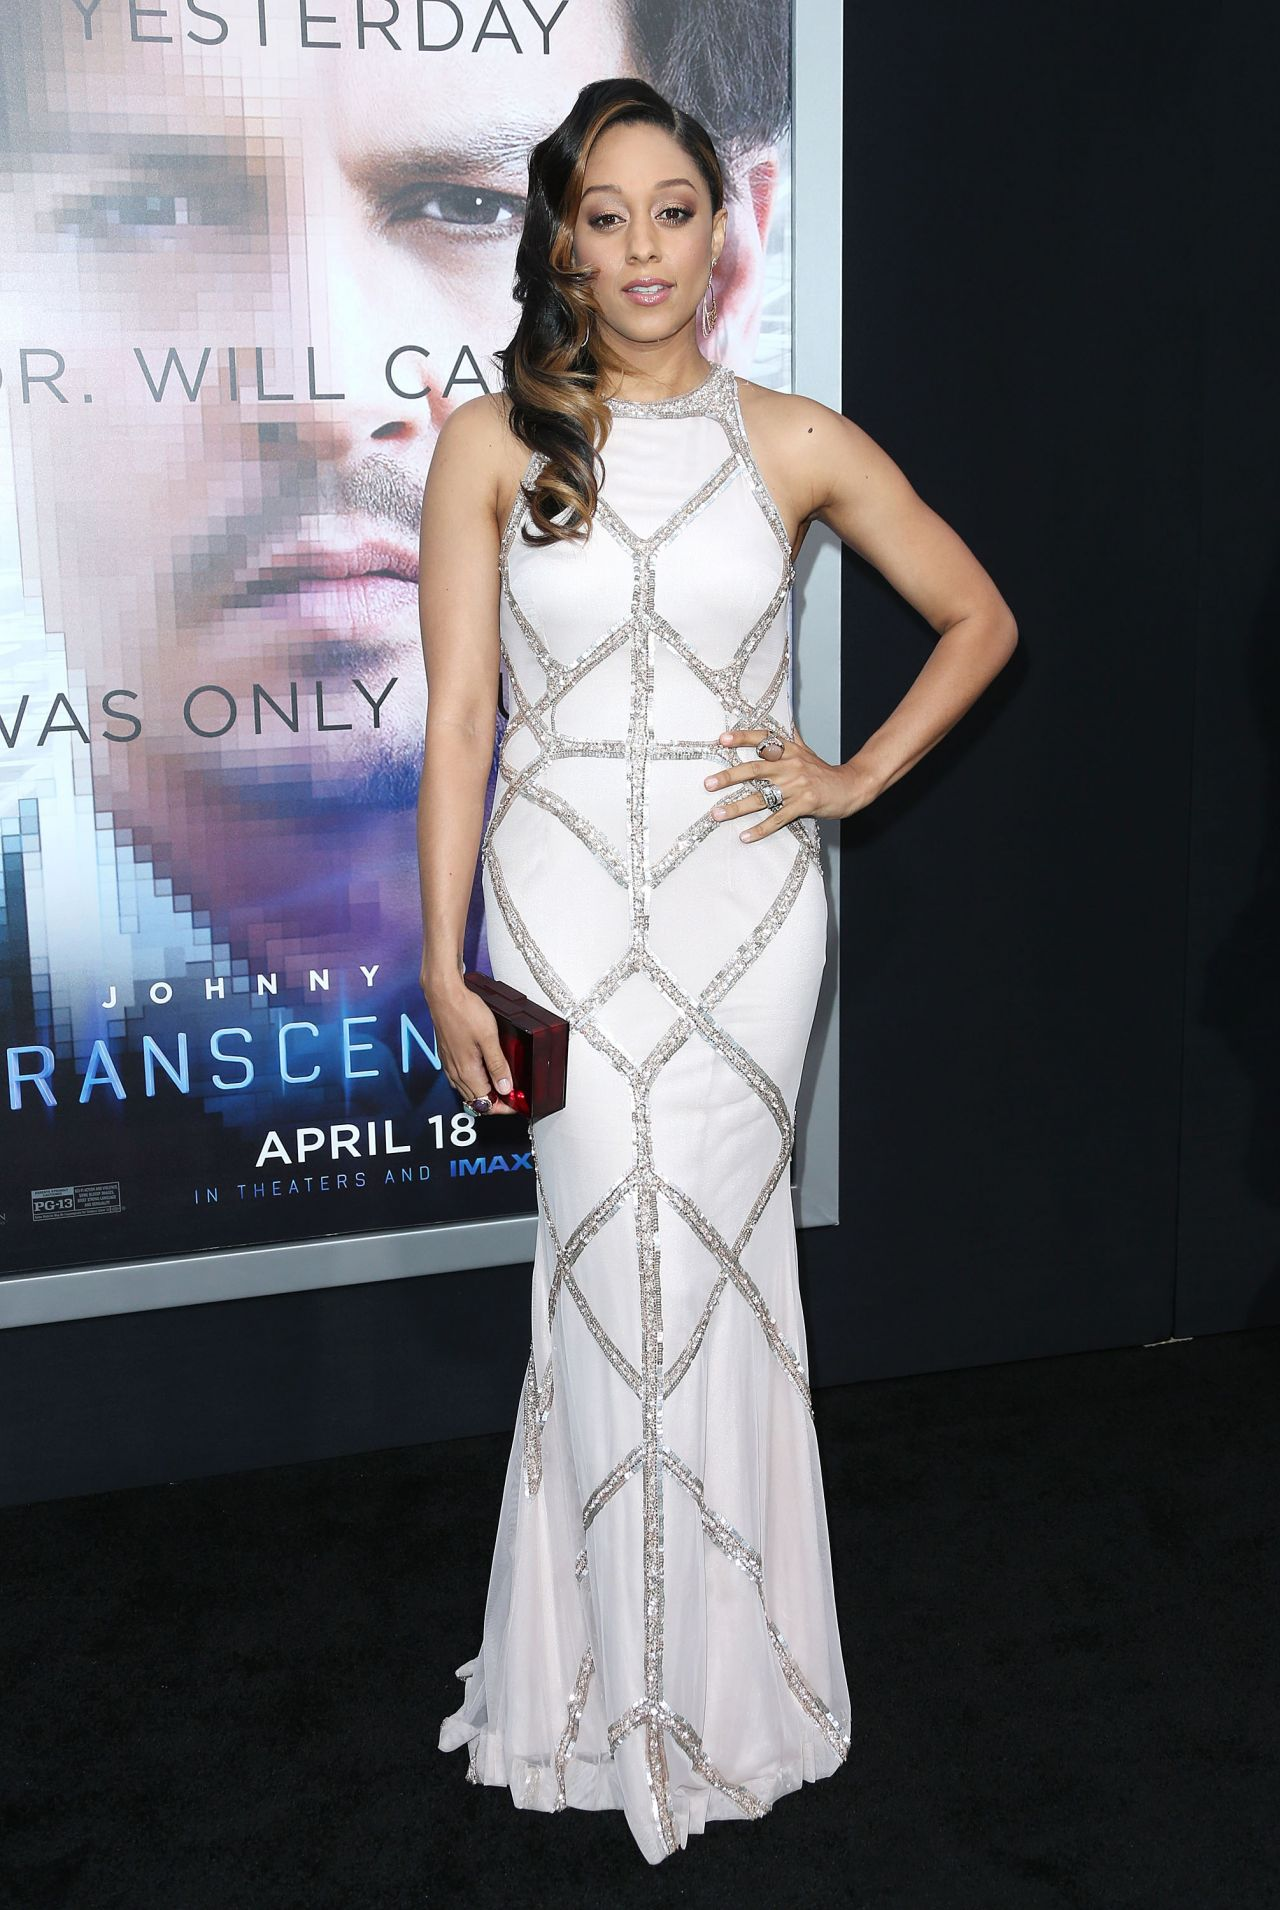 TRANSCENDENCE Premiere in Los Angeles - Tia Mowry